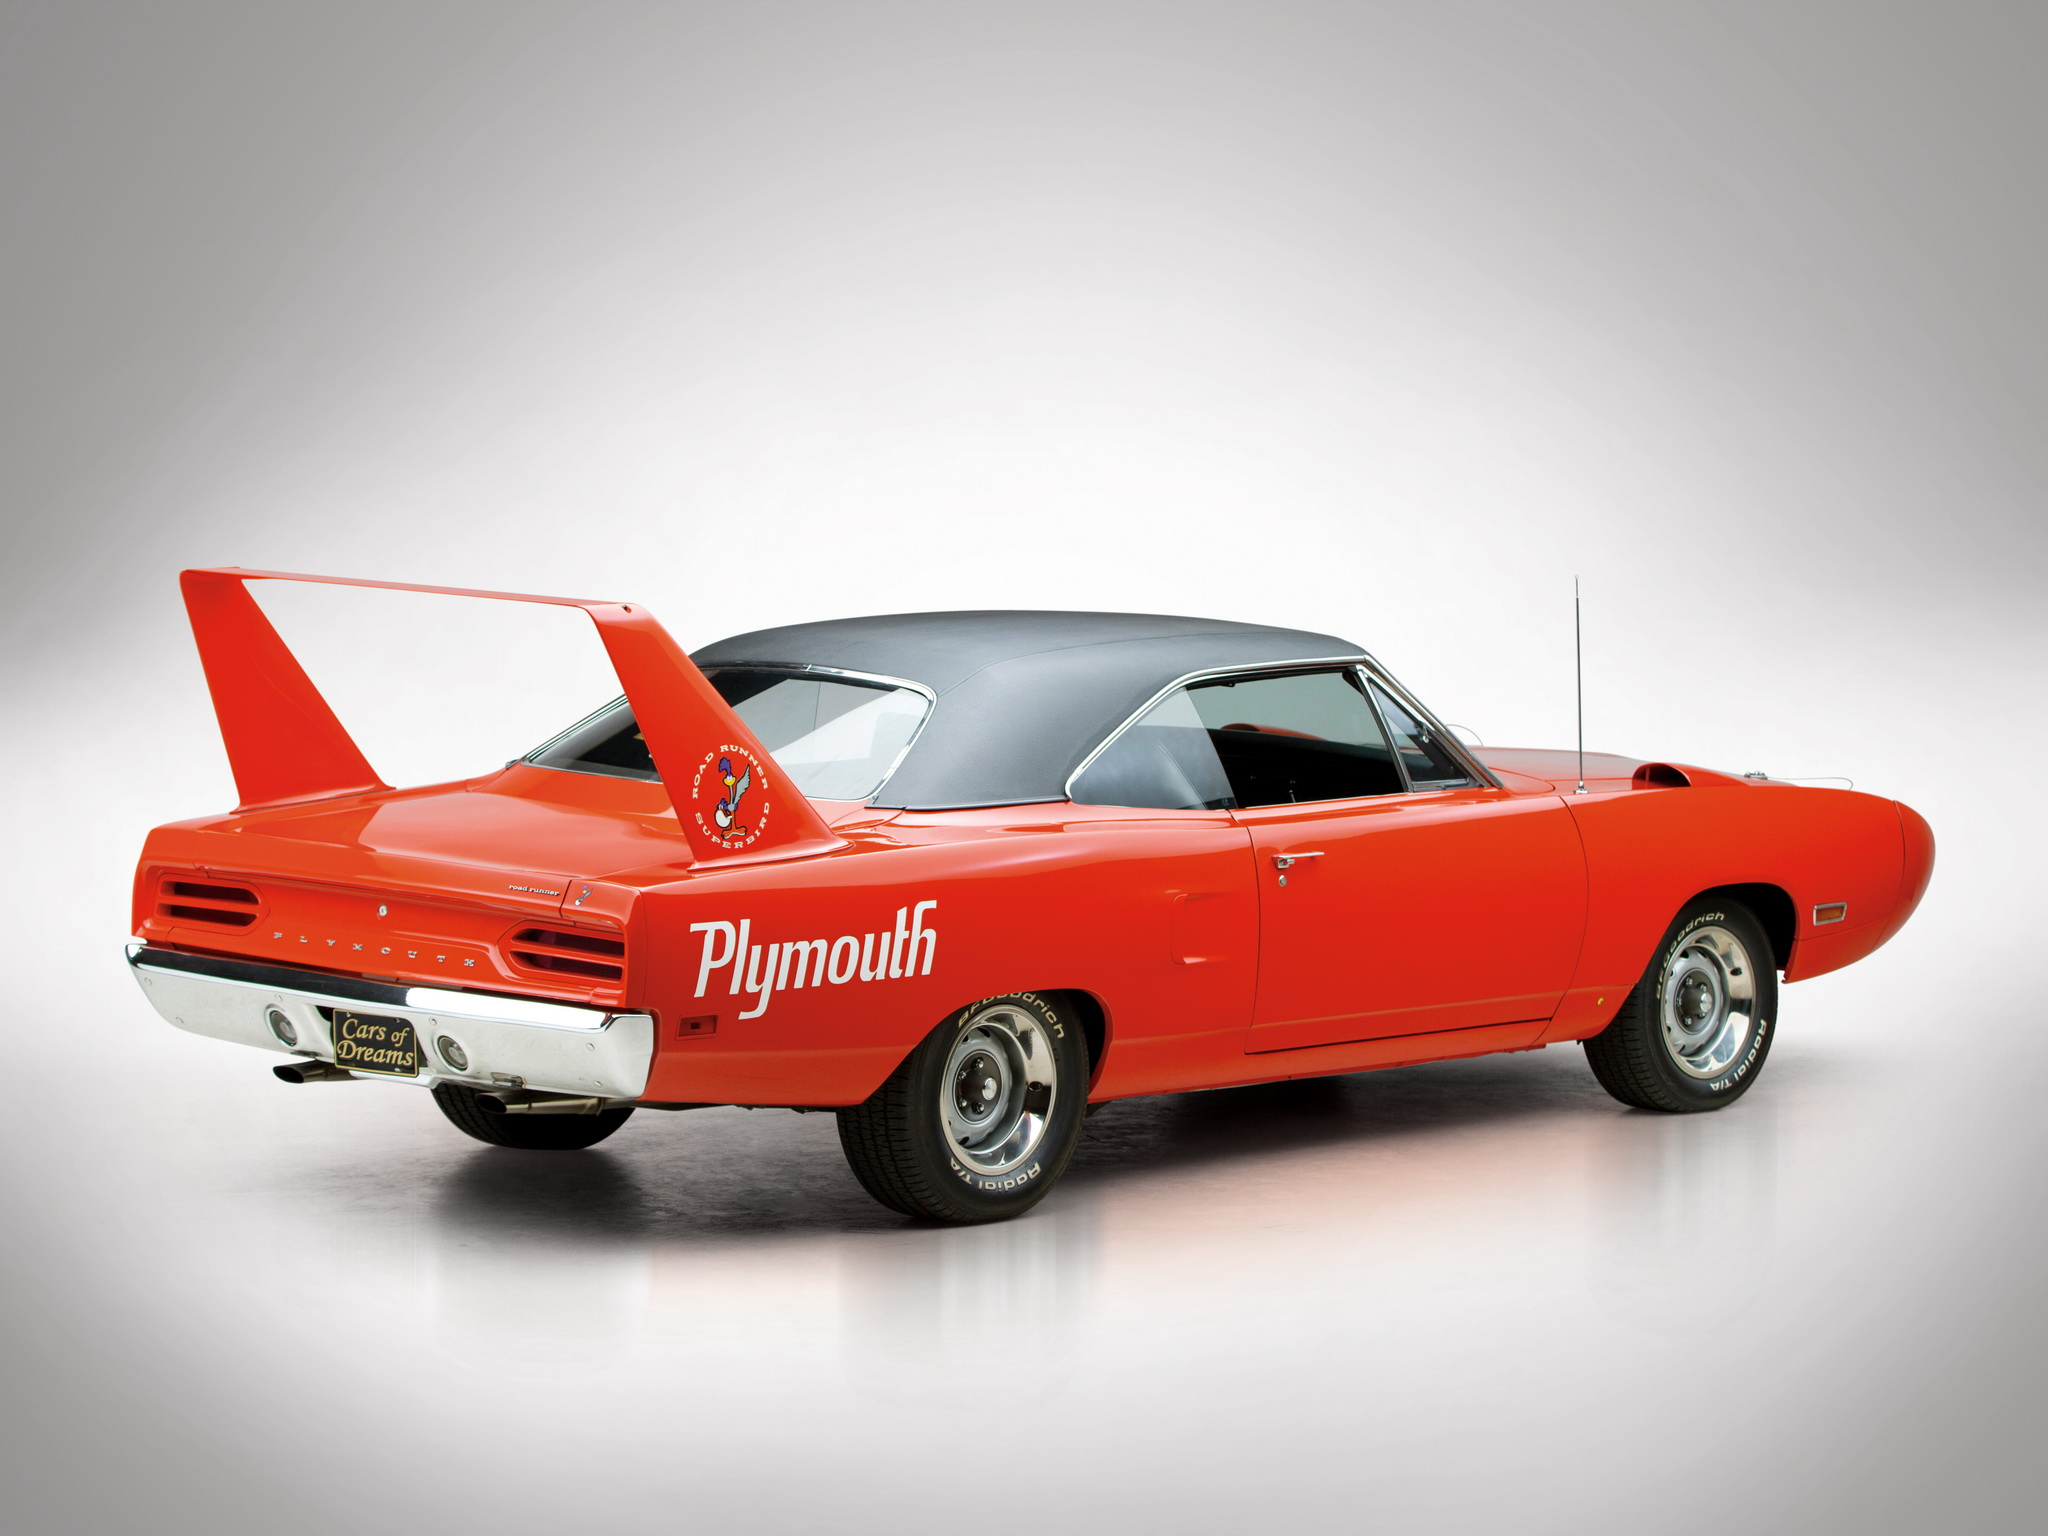 2048x1536 - Plymouth Road Runner Wallpapers 16